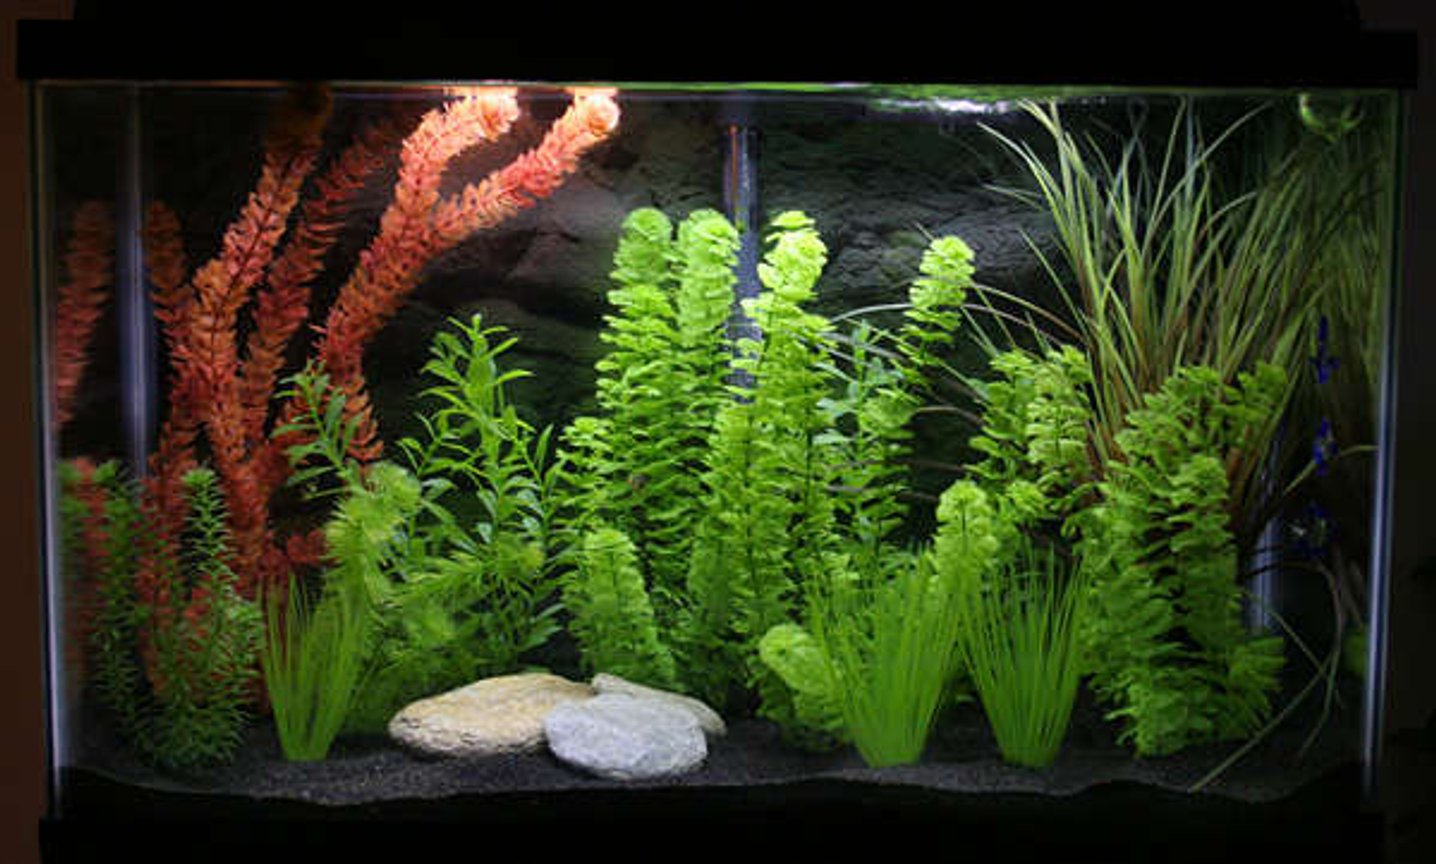 freshwater fish tank (mostly fish and non-living decorations) - 29gallon tank